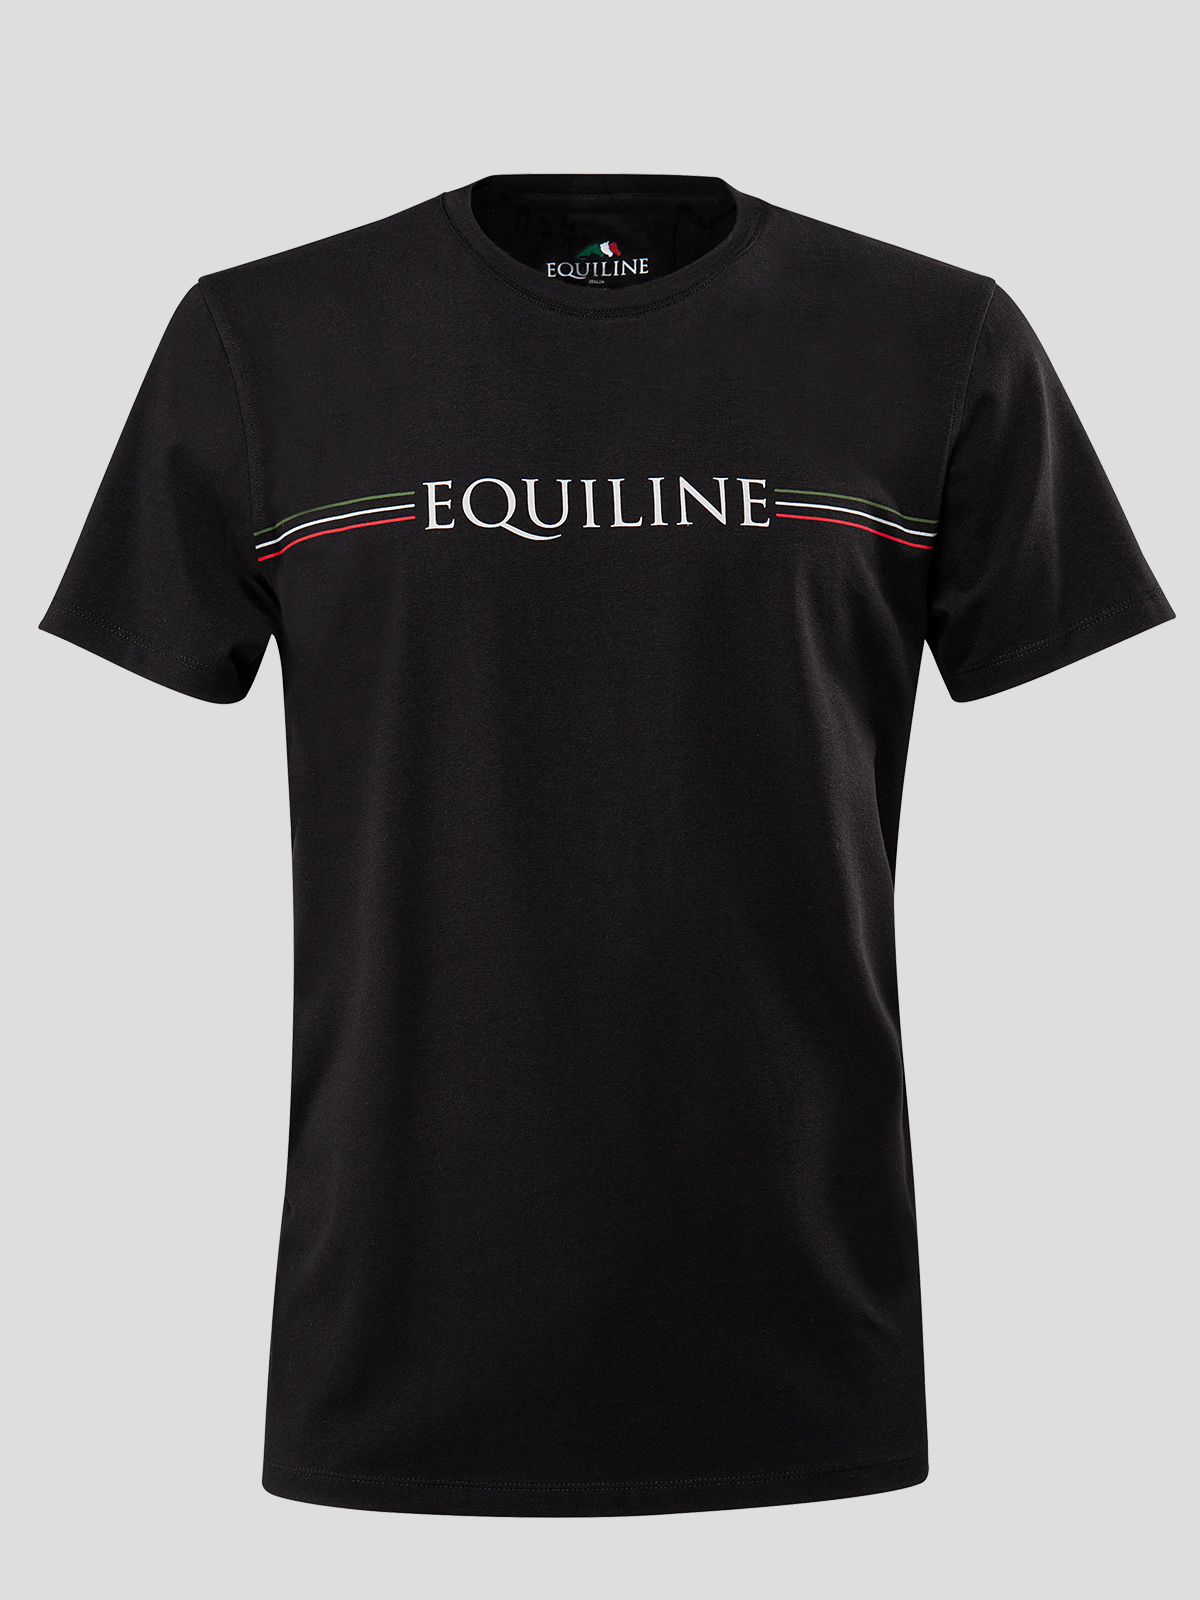 MEN'S T-SHIRT WITH EQUILINE STRIPE LOGO 1